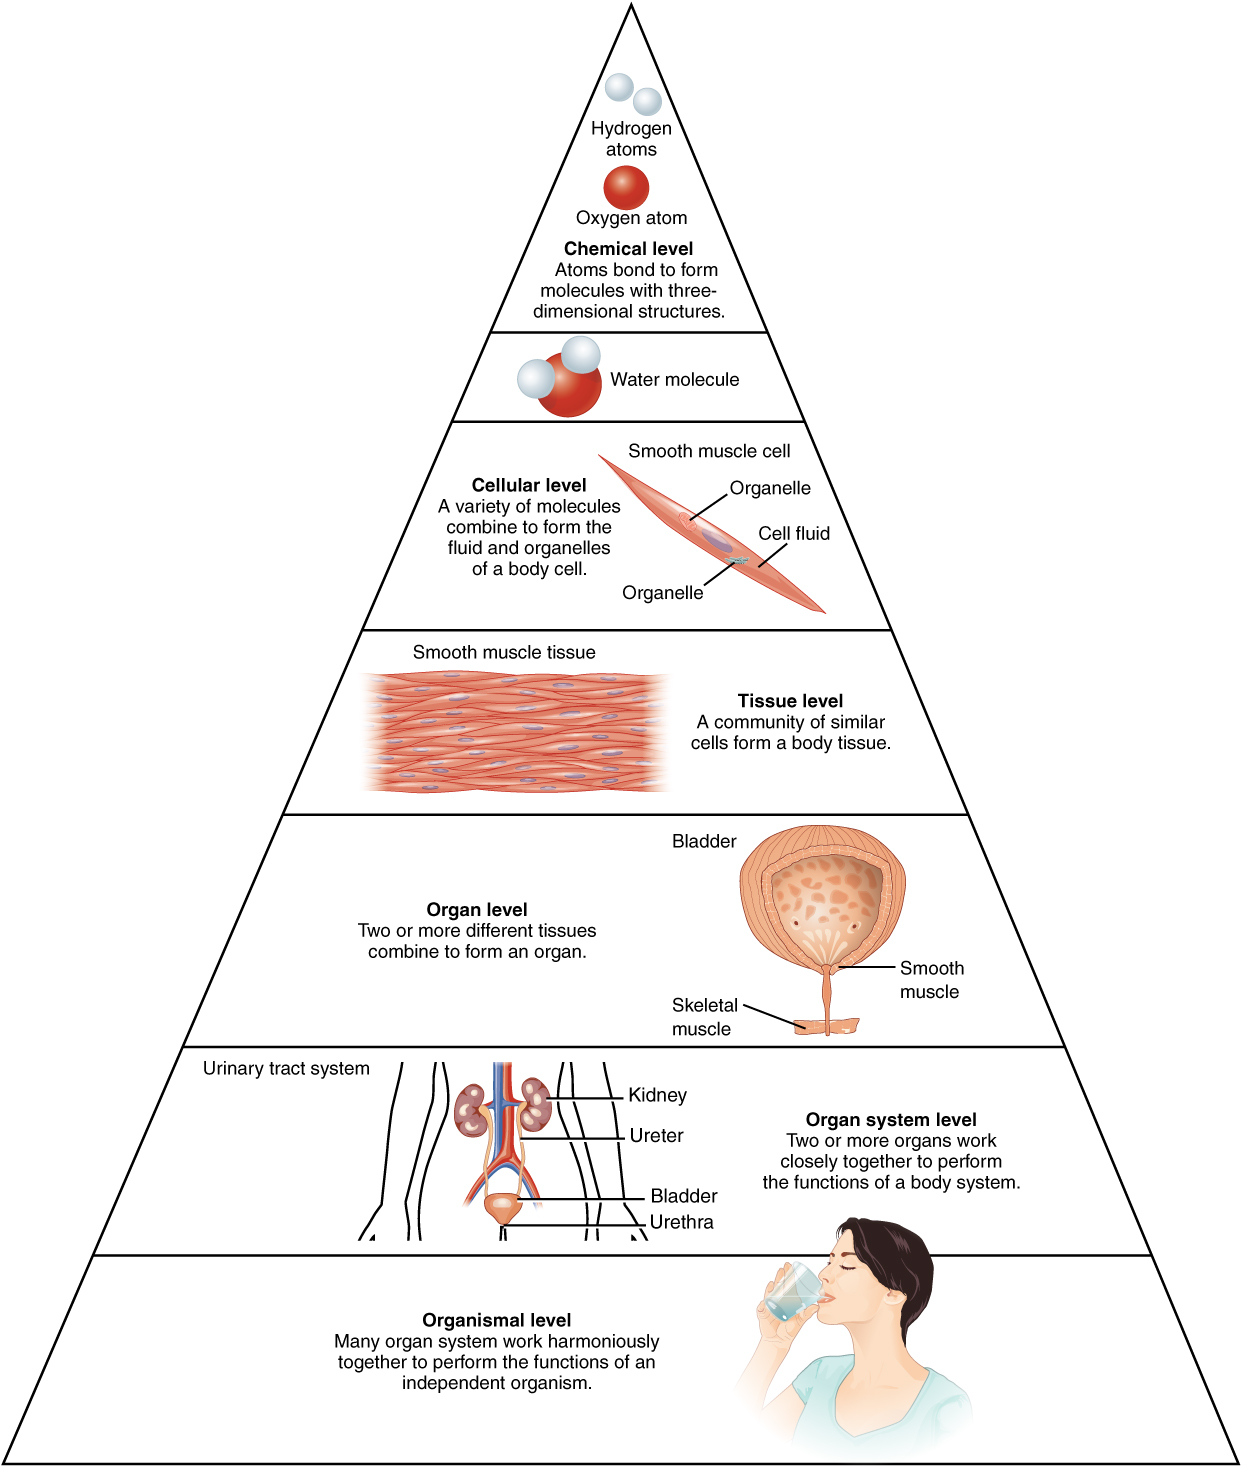 Anatomy and Physiology - Structural Organization of the Human Body